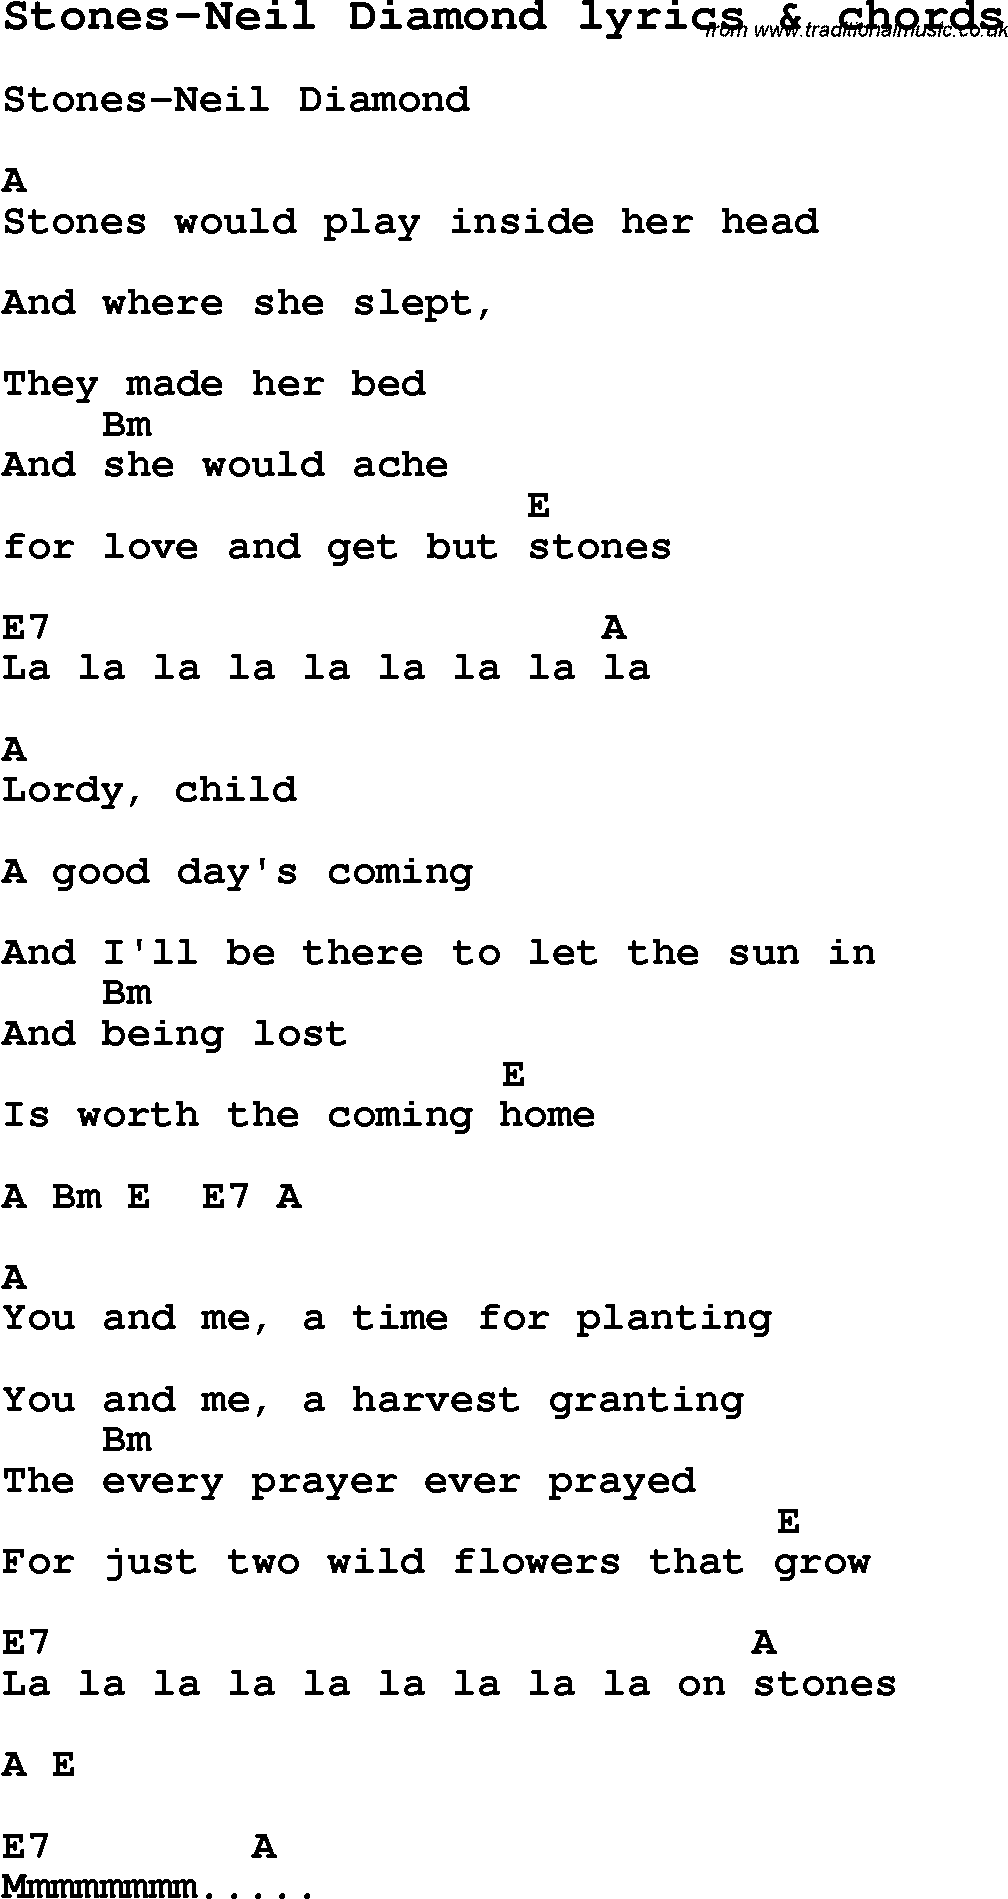 Love Song Lyrics Forstones Neil Diamond With Chords